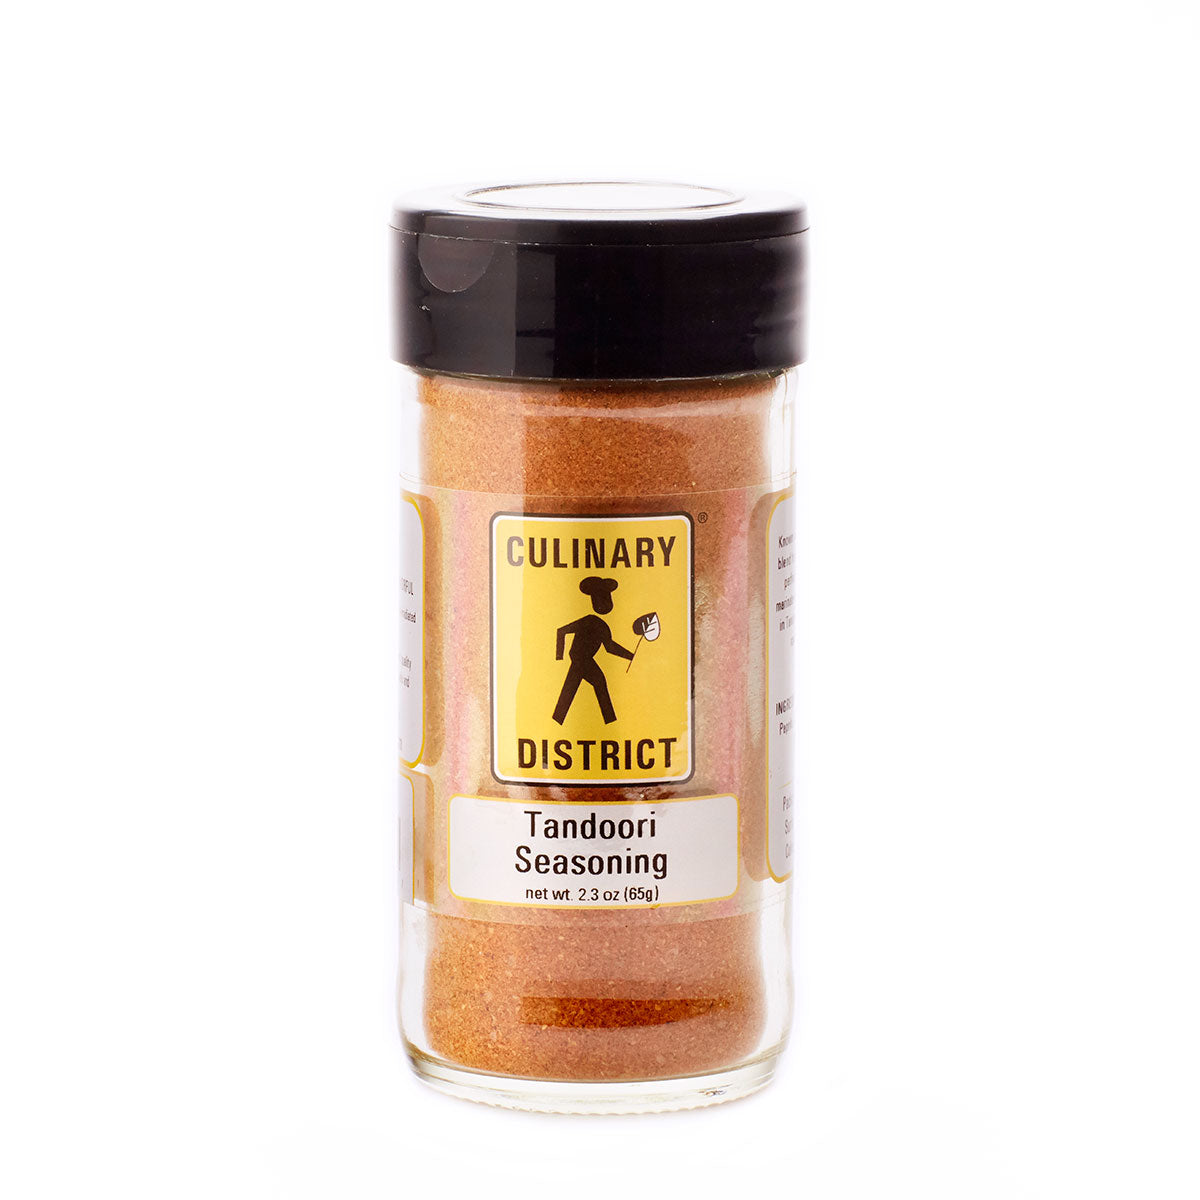 Tandoori Seasoning 2.3oz